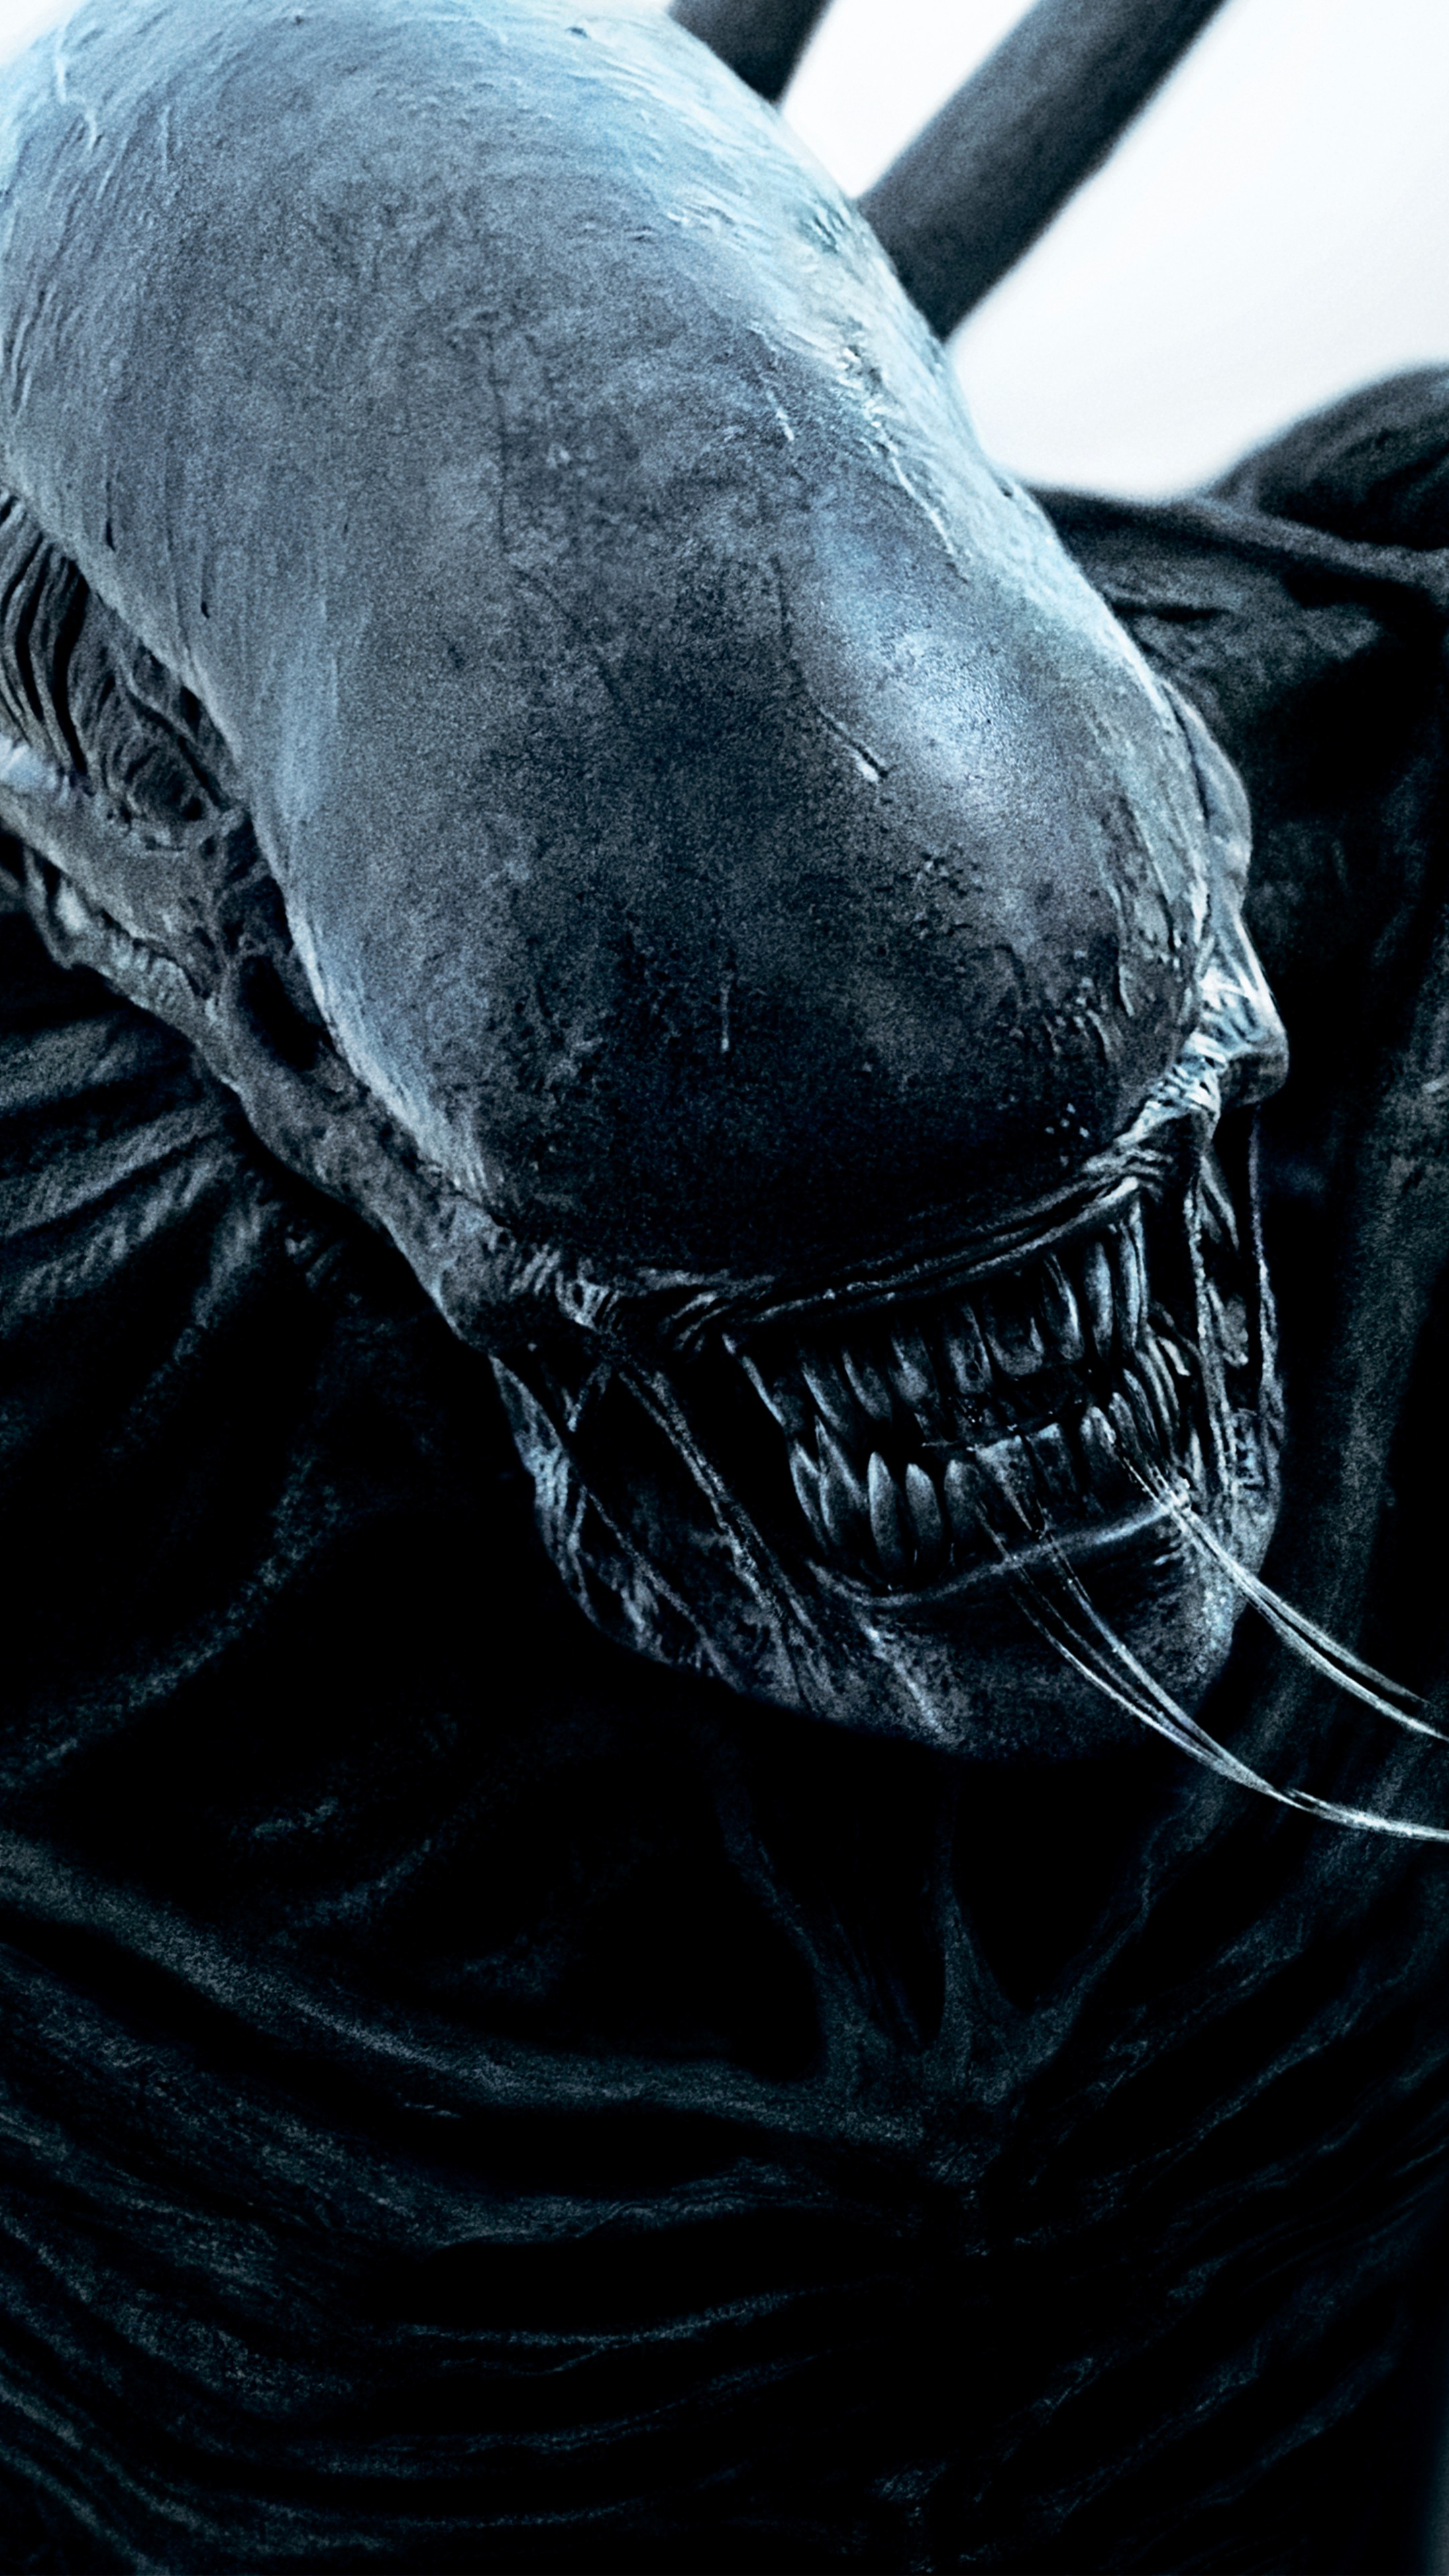 Wallpaper Alien Covenant 4k Hd Alien Monster Best